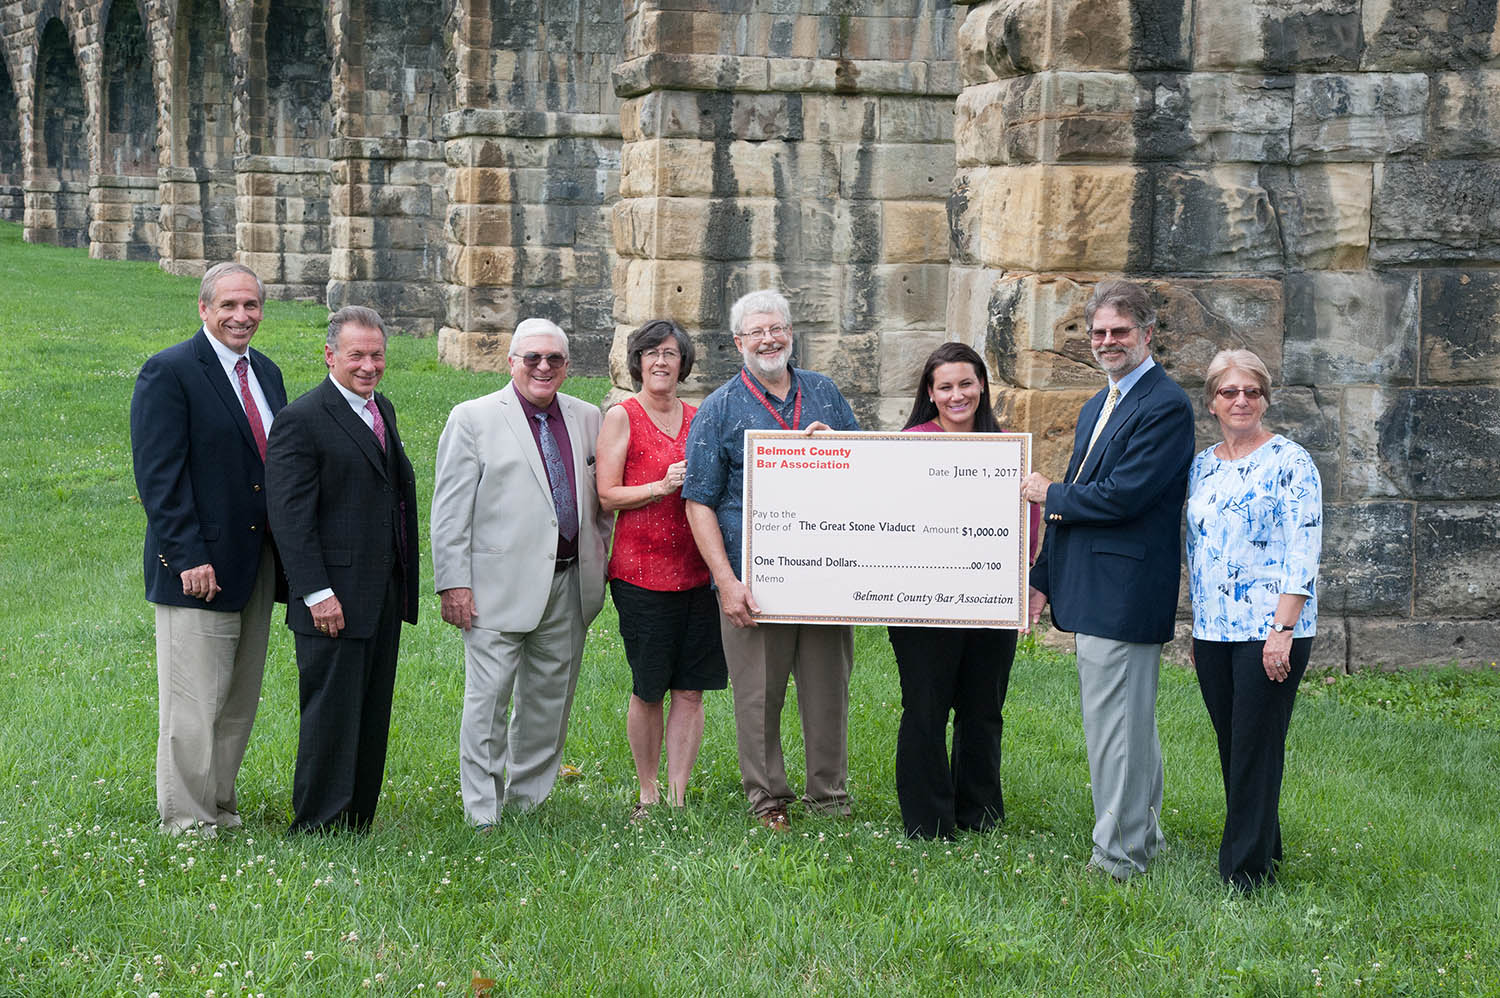 Belmont County Bar Association donation